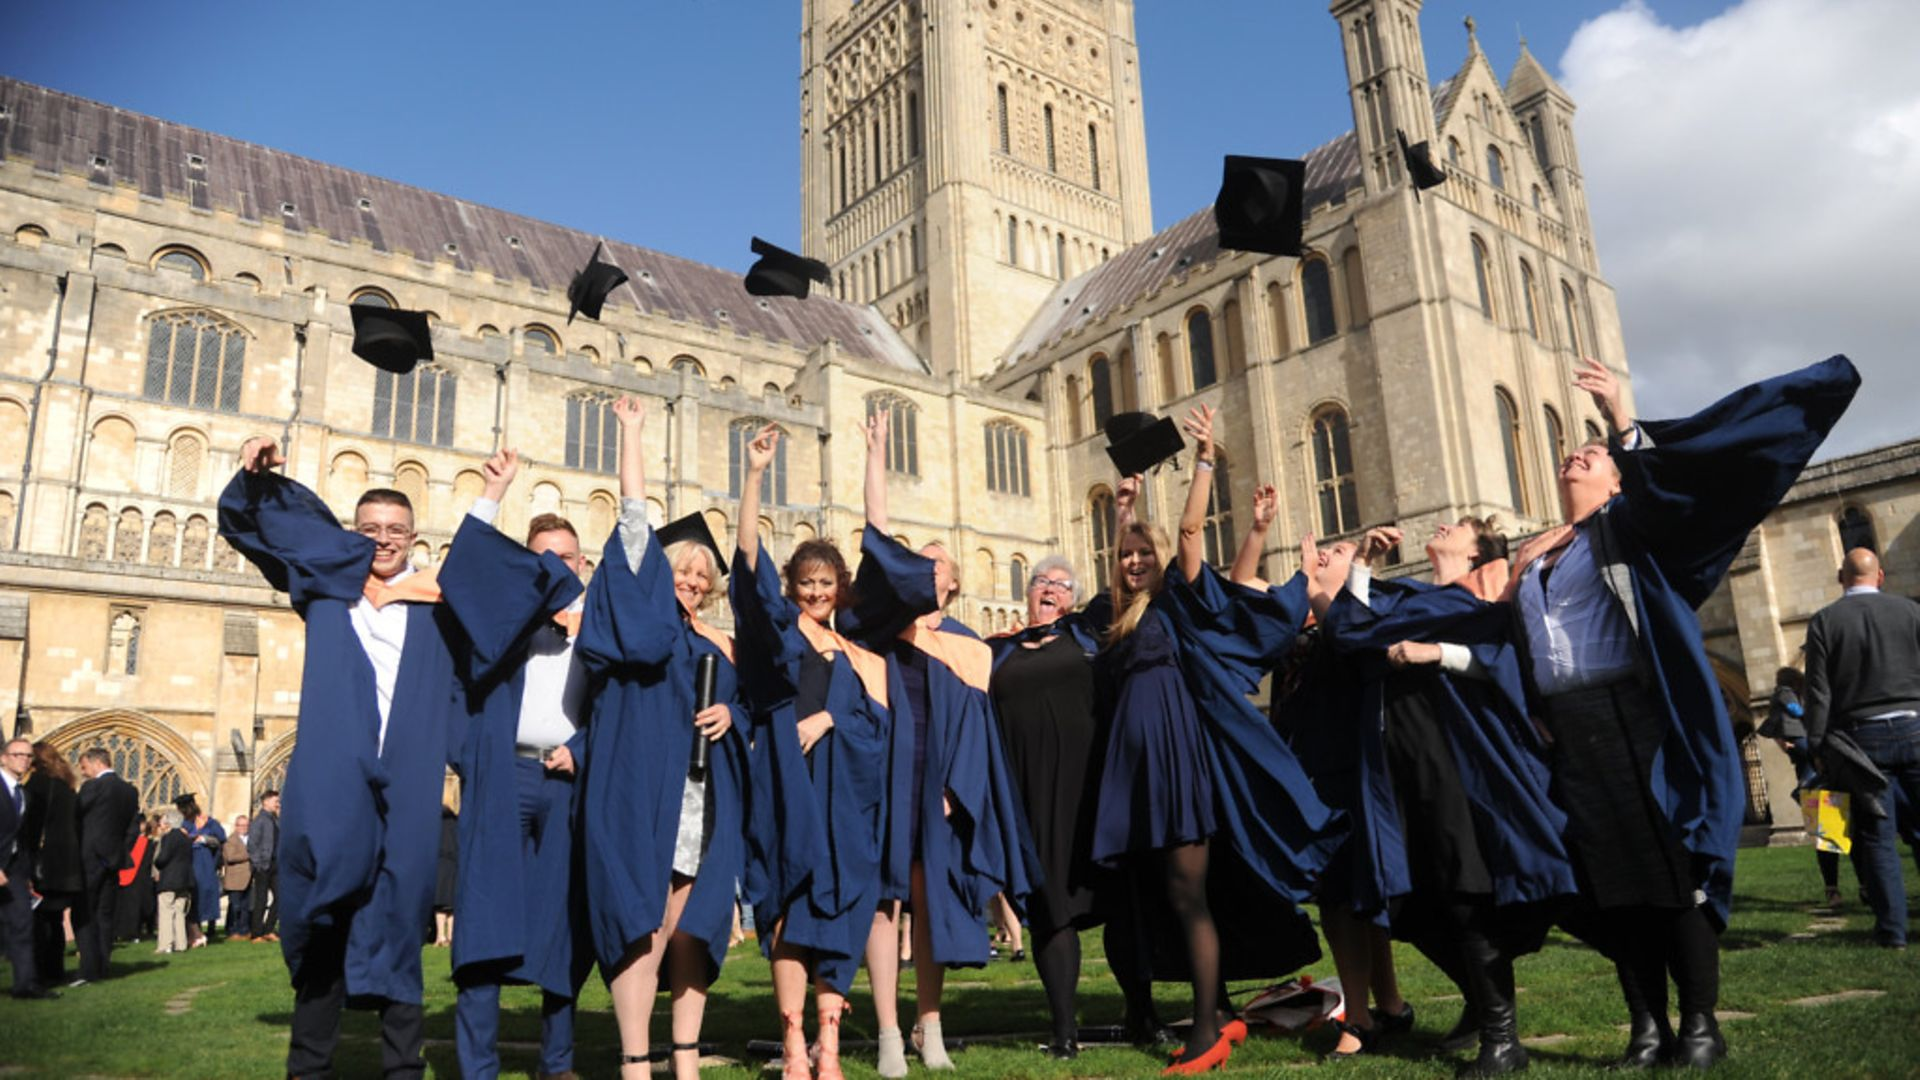 Students celebrate graduation at Norwich Cathedral - Credit: Archant